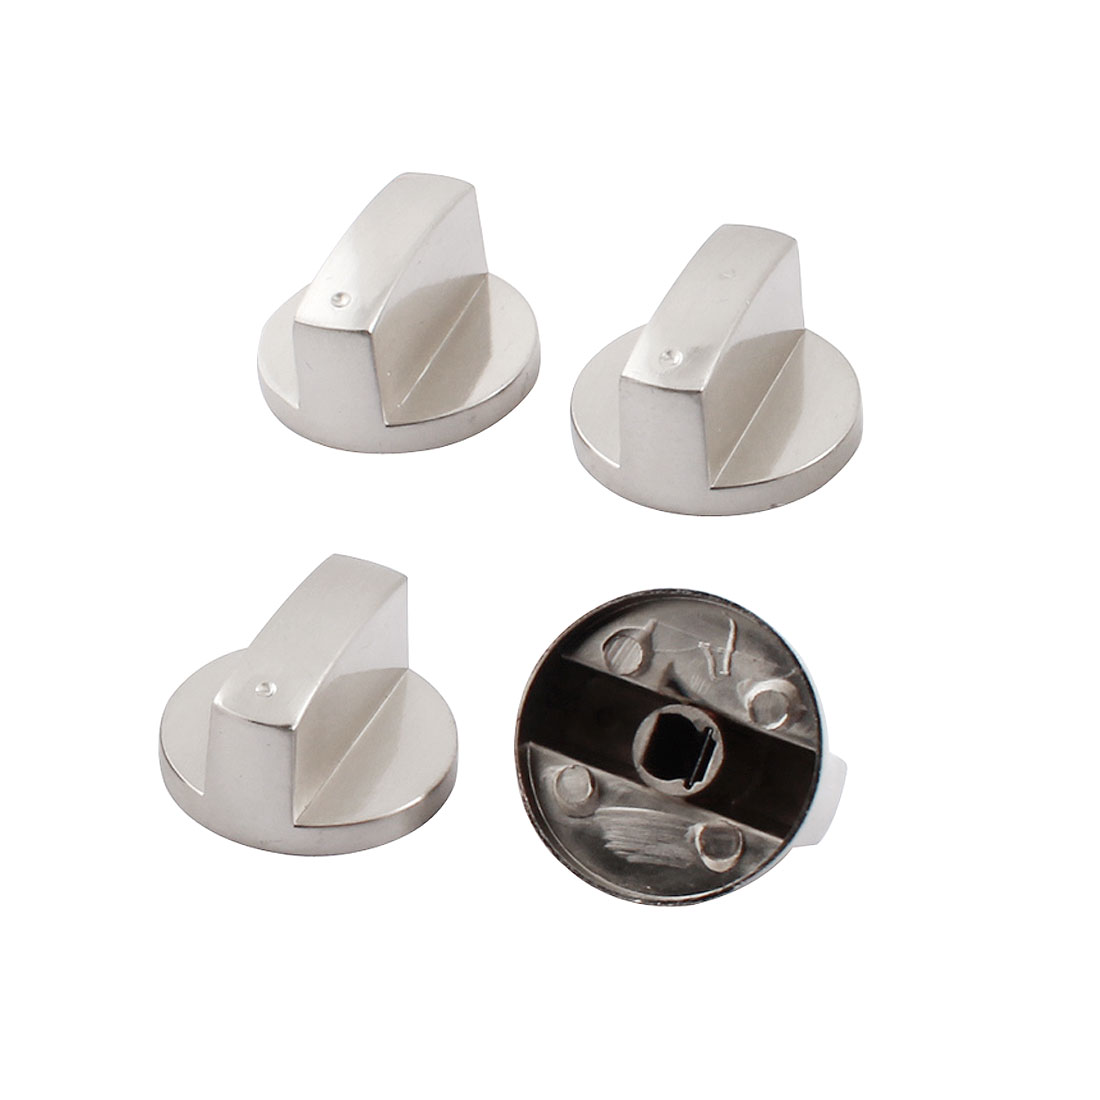 4 Pcs 40mm Dia Stainless Steel Grip Rotary Knob for Gas Stove Oven